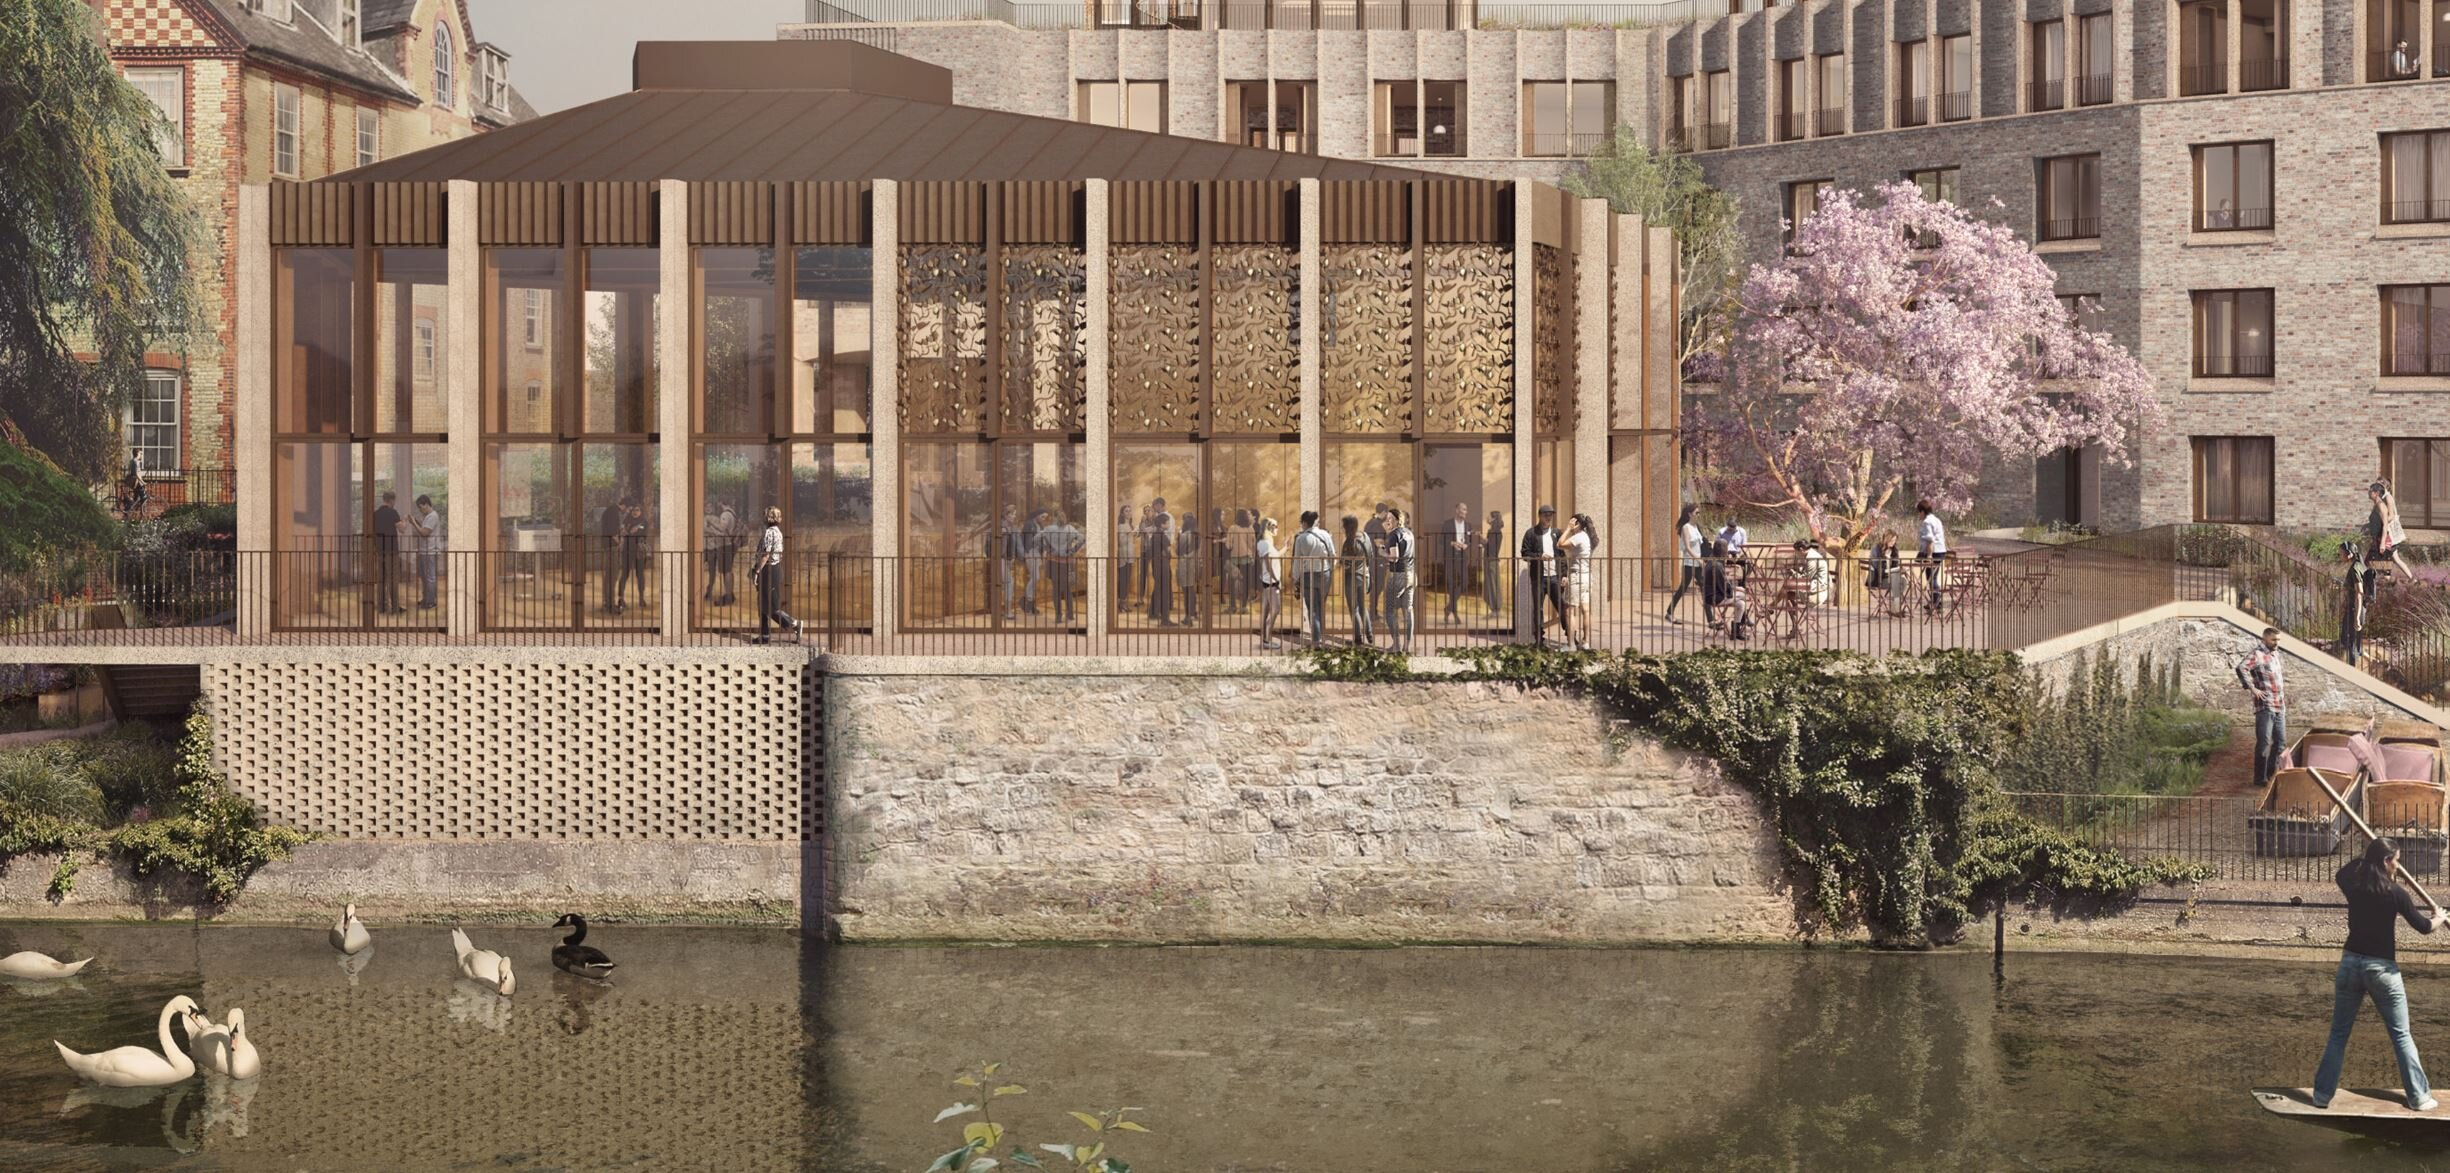 An artist impression of the St Hilda's Front of College development